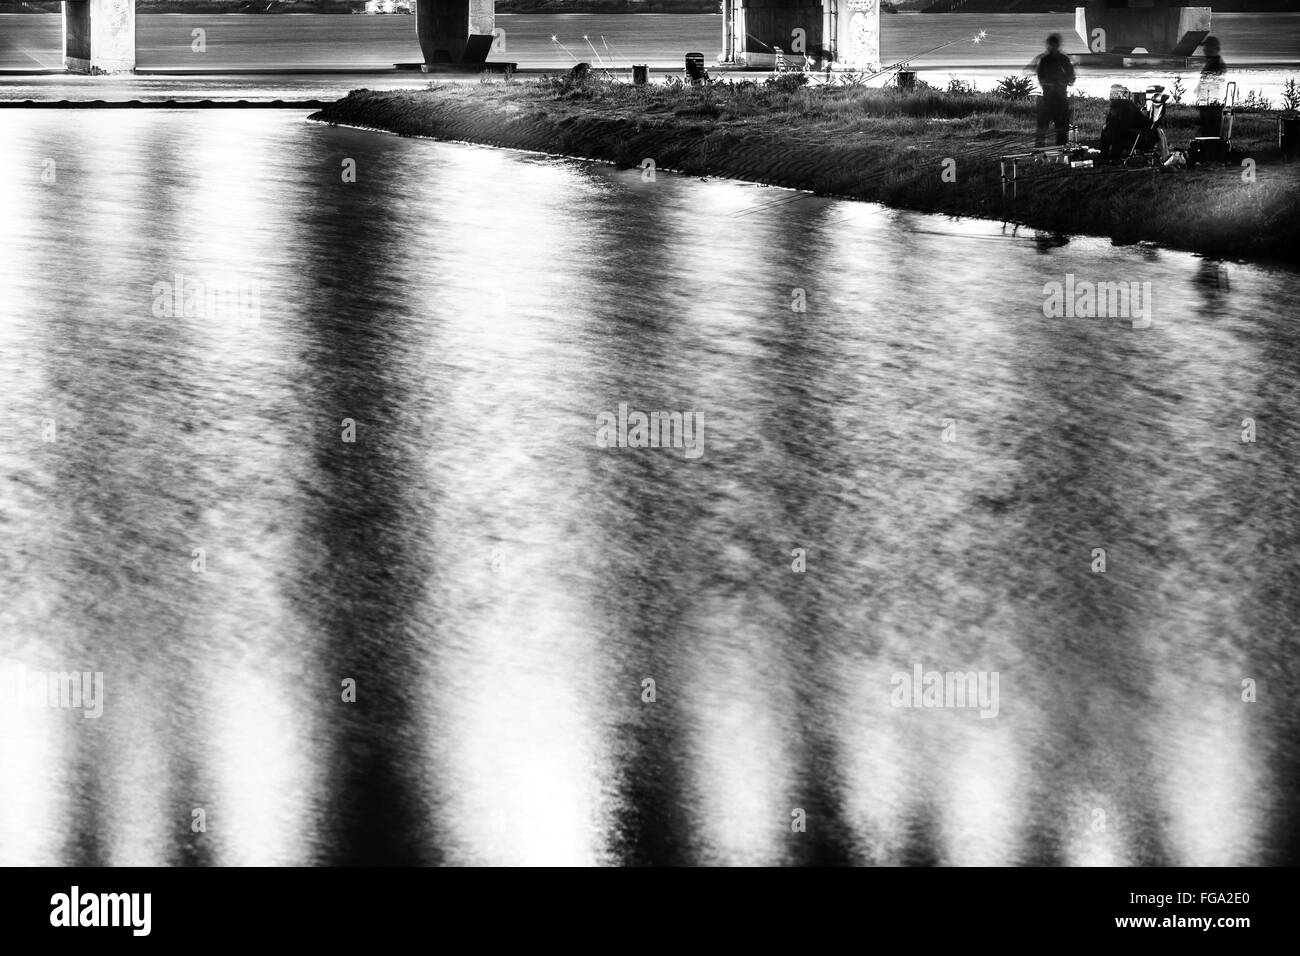 High Angle View Of River By Field At Night - Stock Image